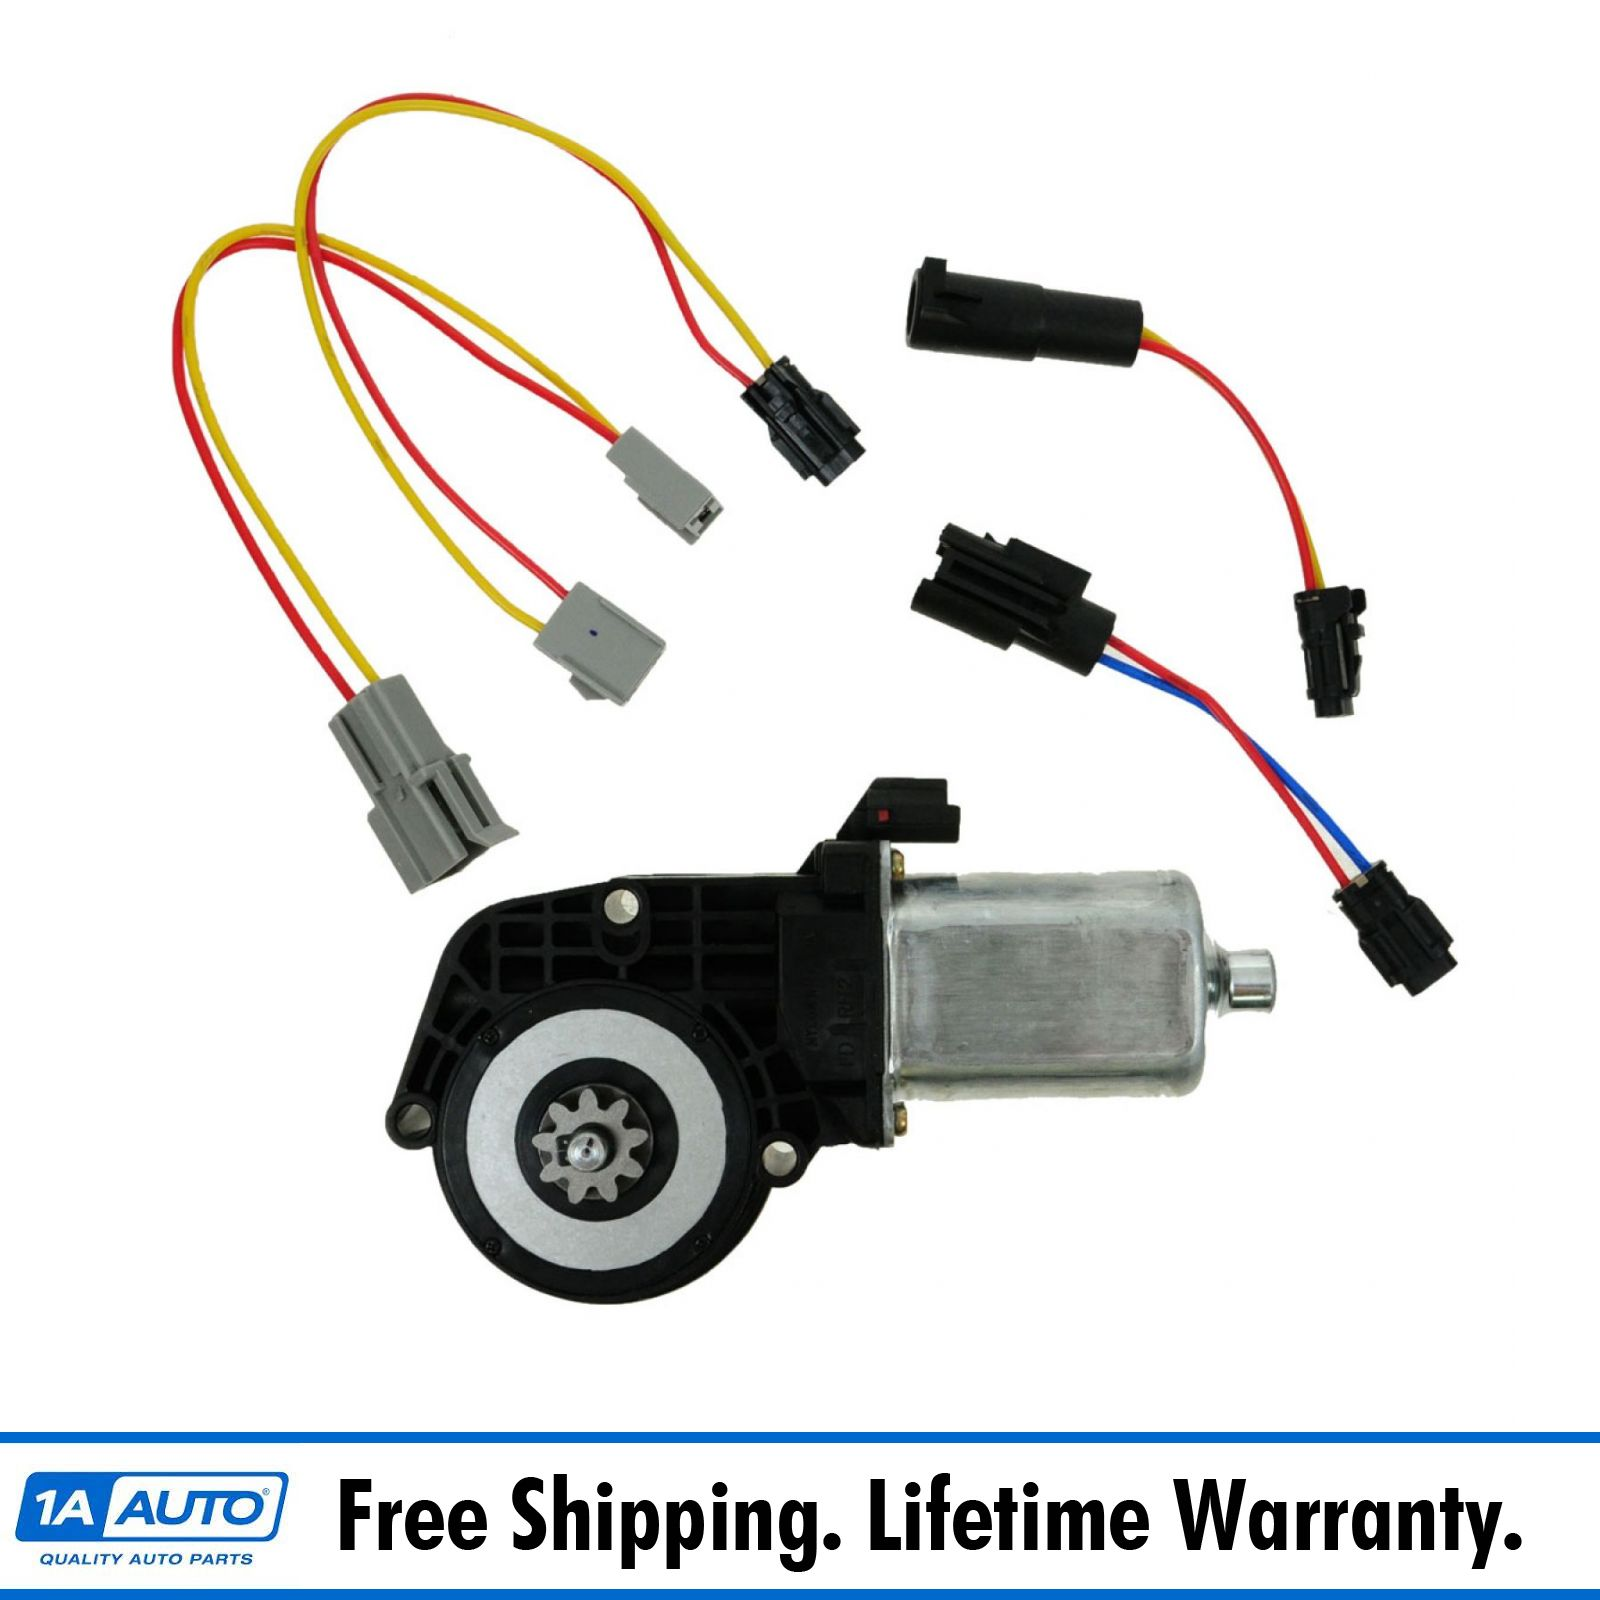 Dorman Power Door Lift Window Motor For Ford Lincoln